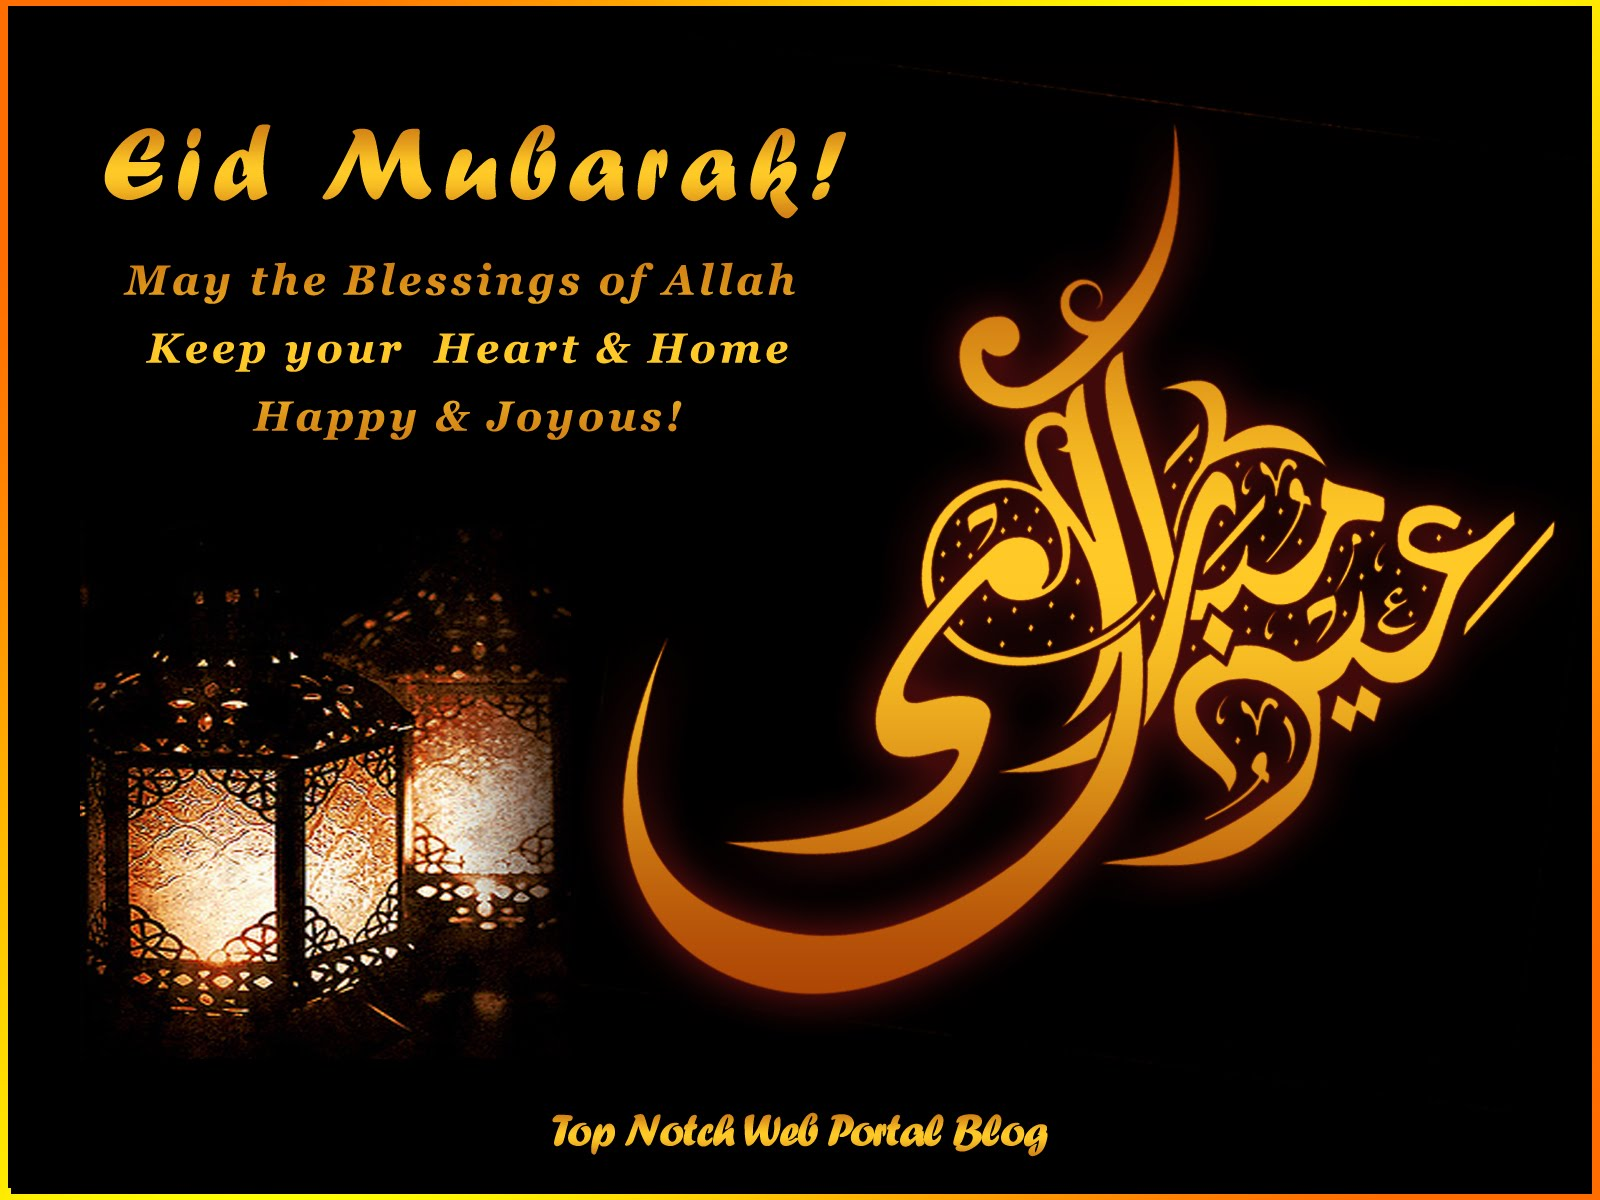 Eid Mubarak Eid Greetings Images